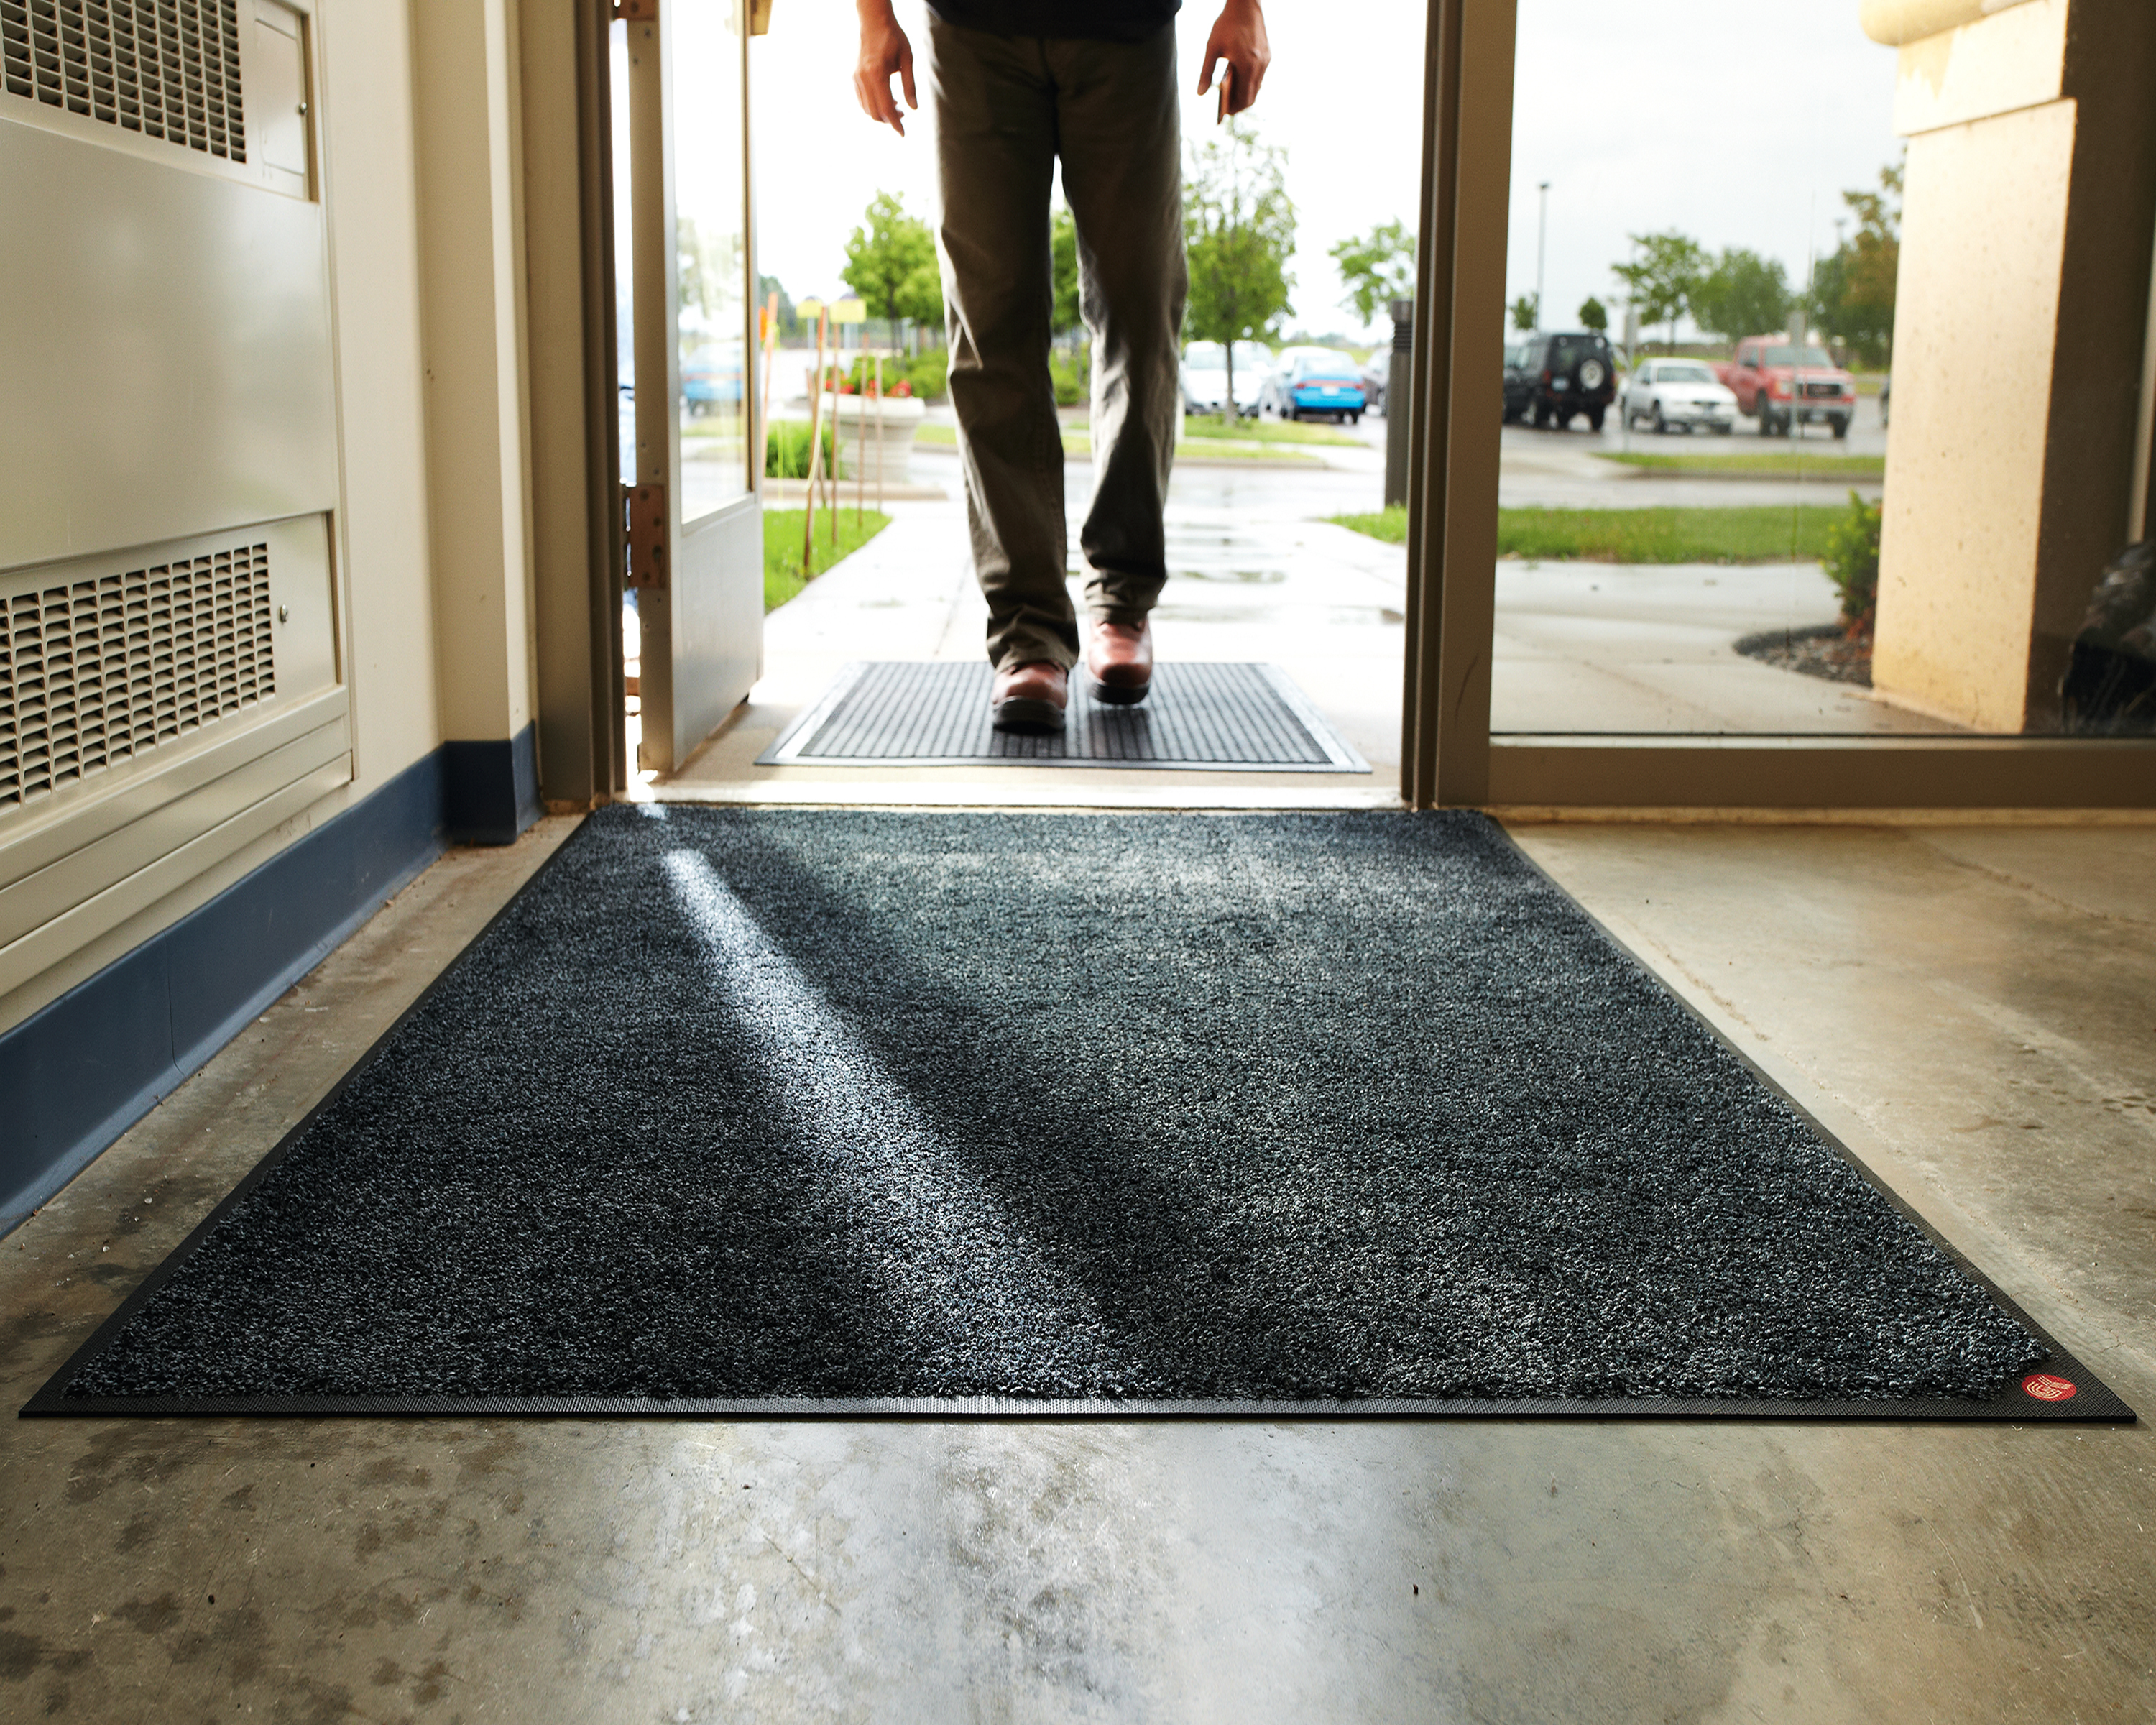 G k services lays out five floor mats to enhance your facility all year round business wire